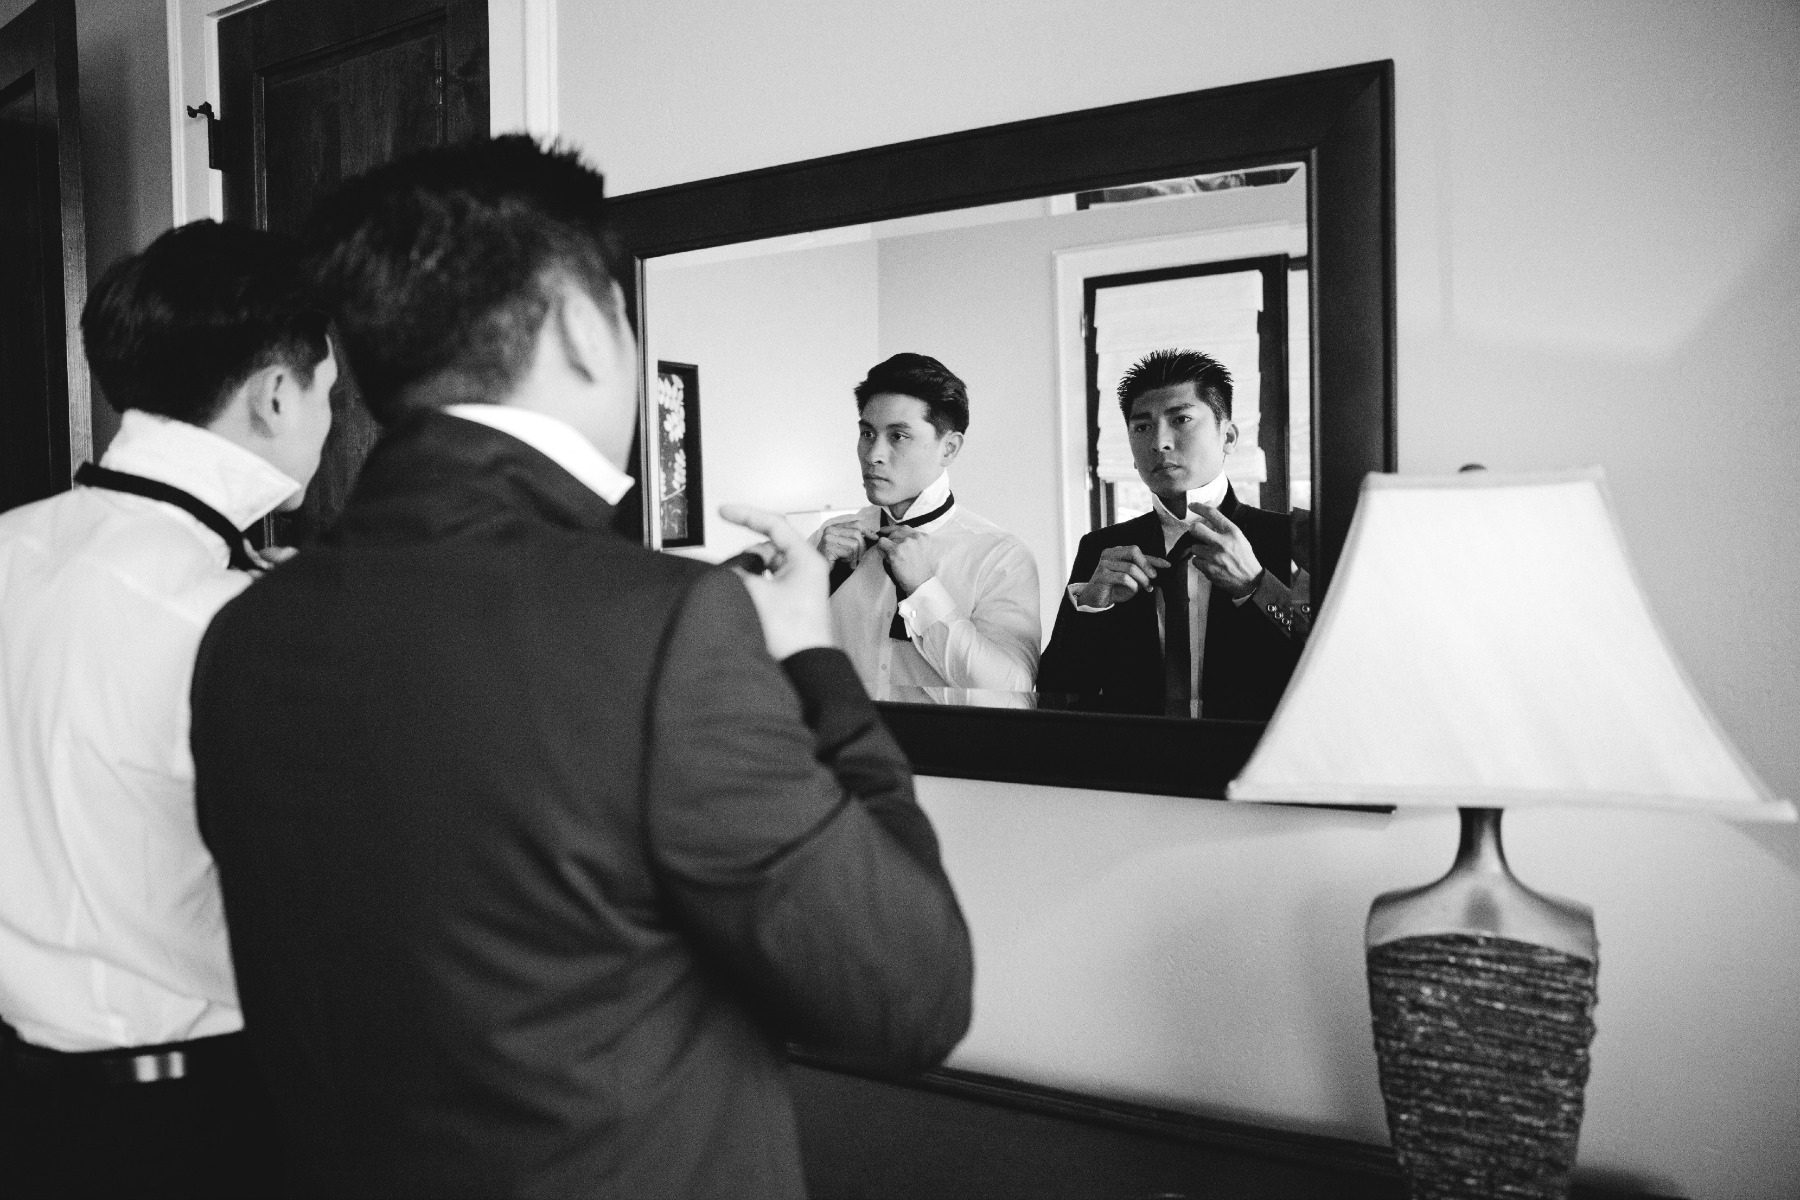 groom and best man tie their ties in front of mirror